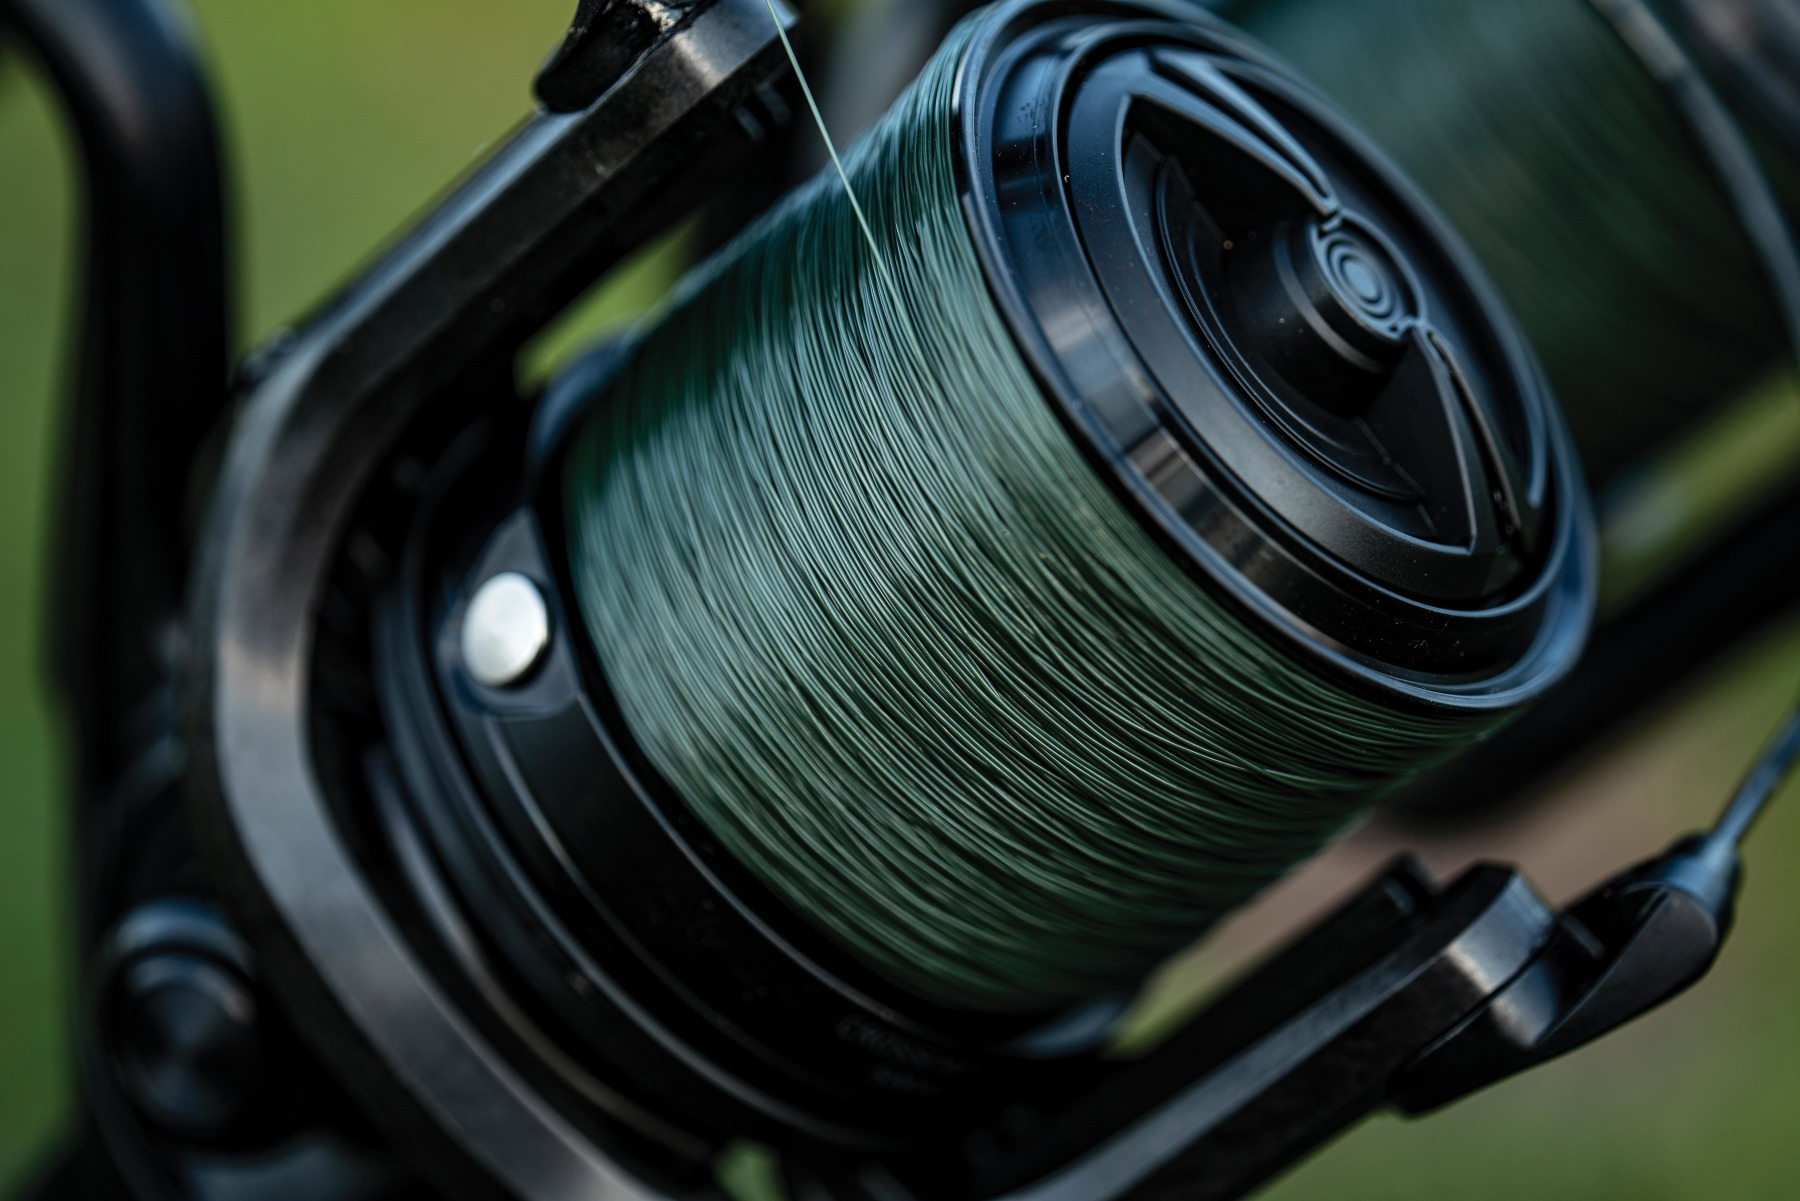 The 45 stands for 45mm spool, which Daiwa claim is the optimum size for long casts